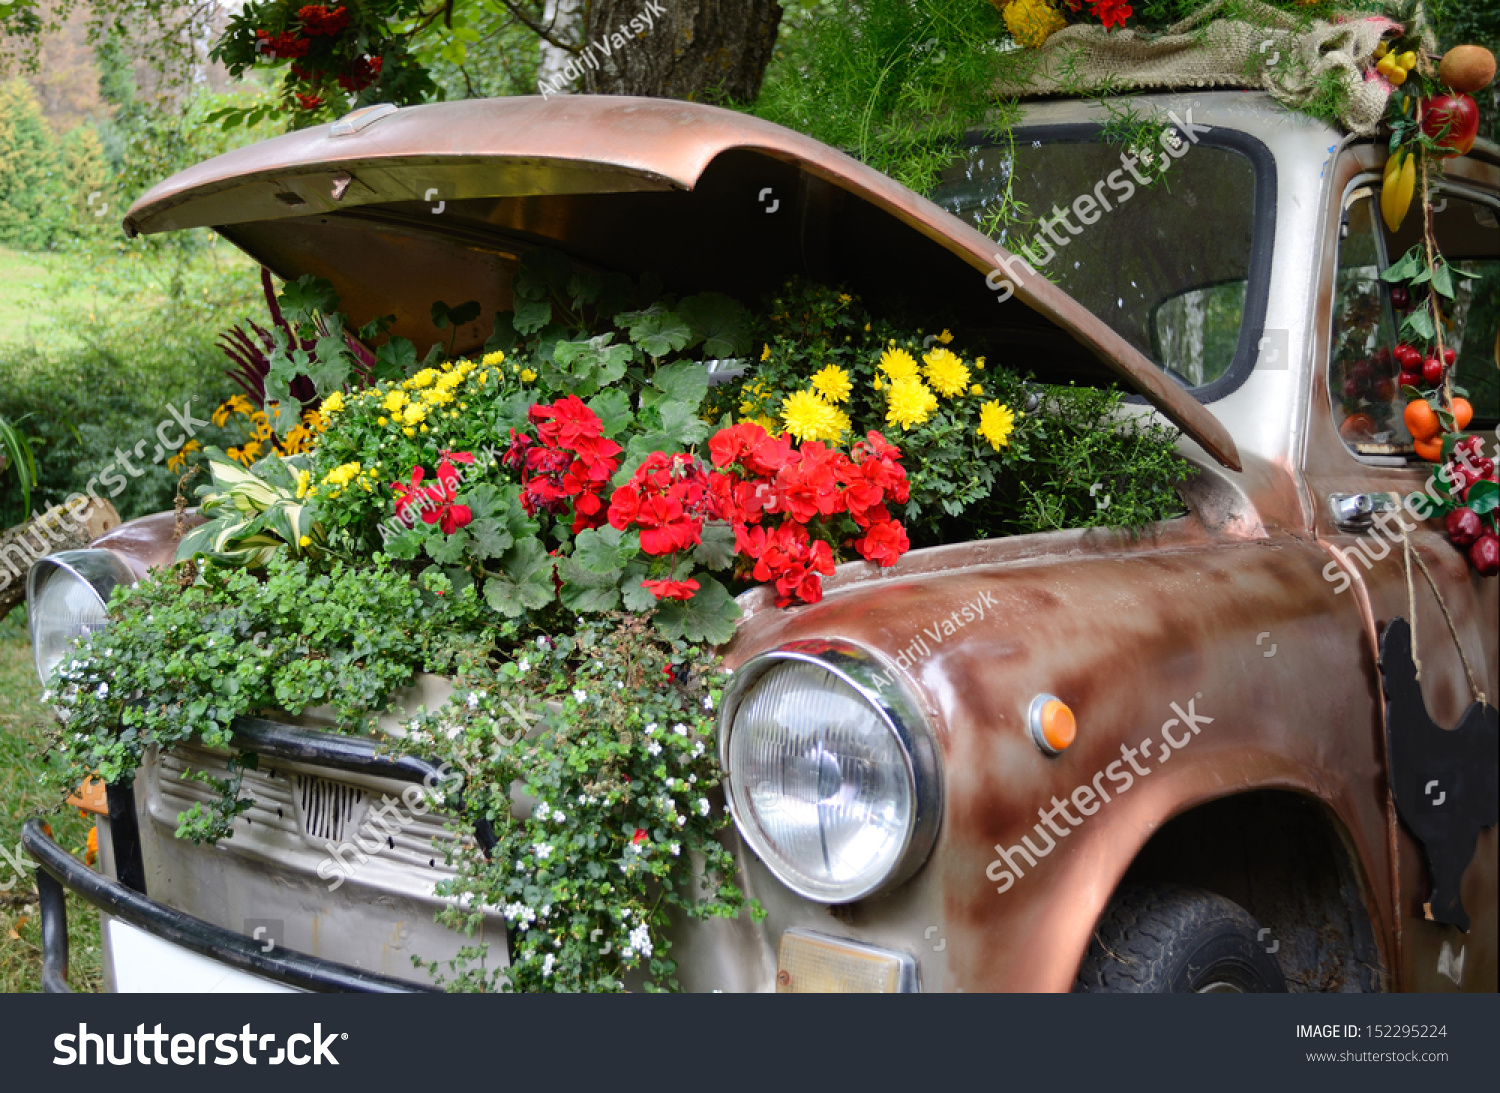 Flowers under hood old car stock photo royalty free 152295224 flowers under the hood of an old car izmirmasajfo Image collections